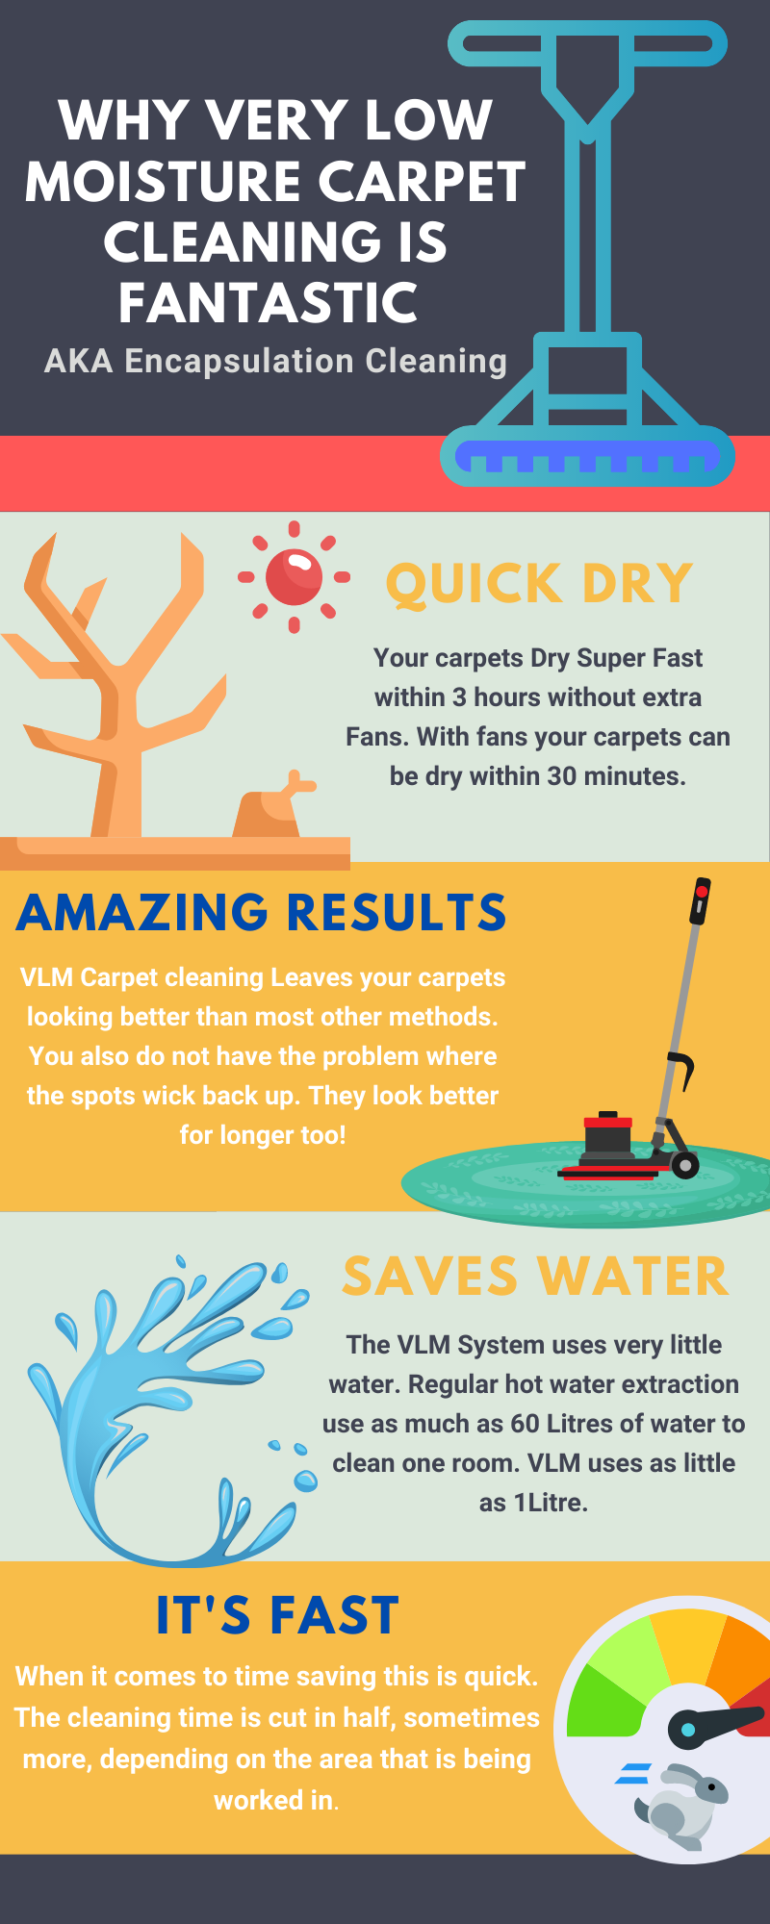 Why Very Low Moisture Carpet Cleaning is Fantastic